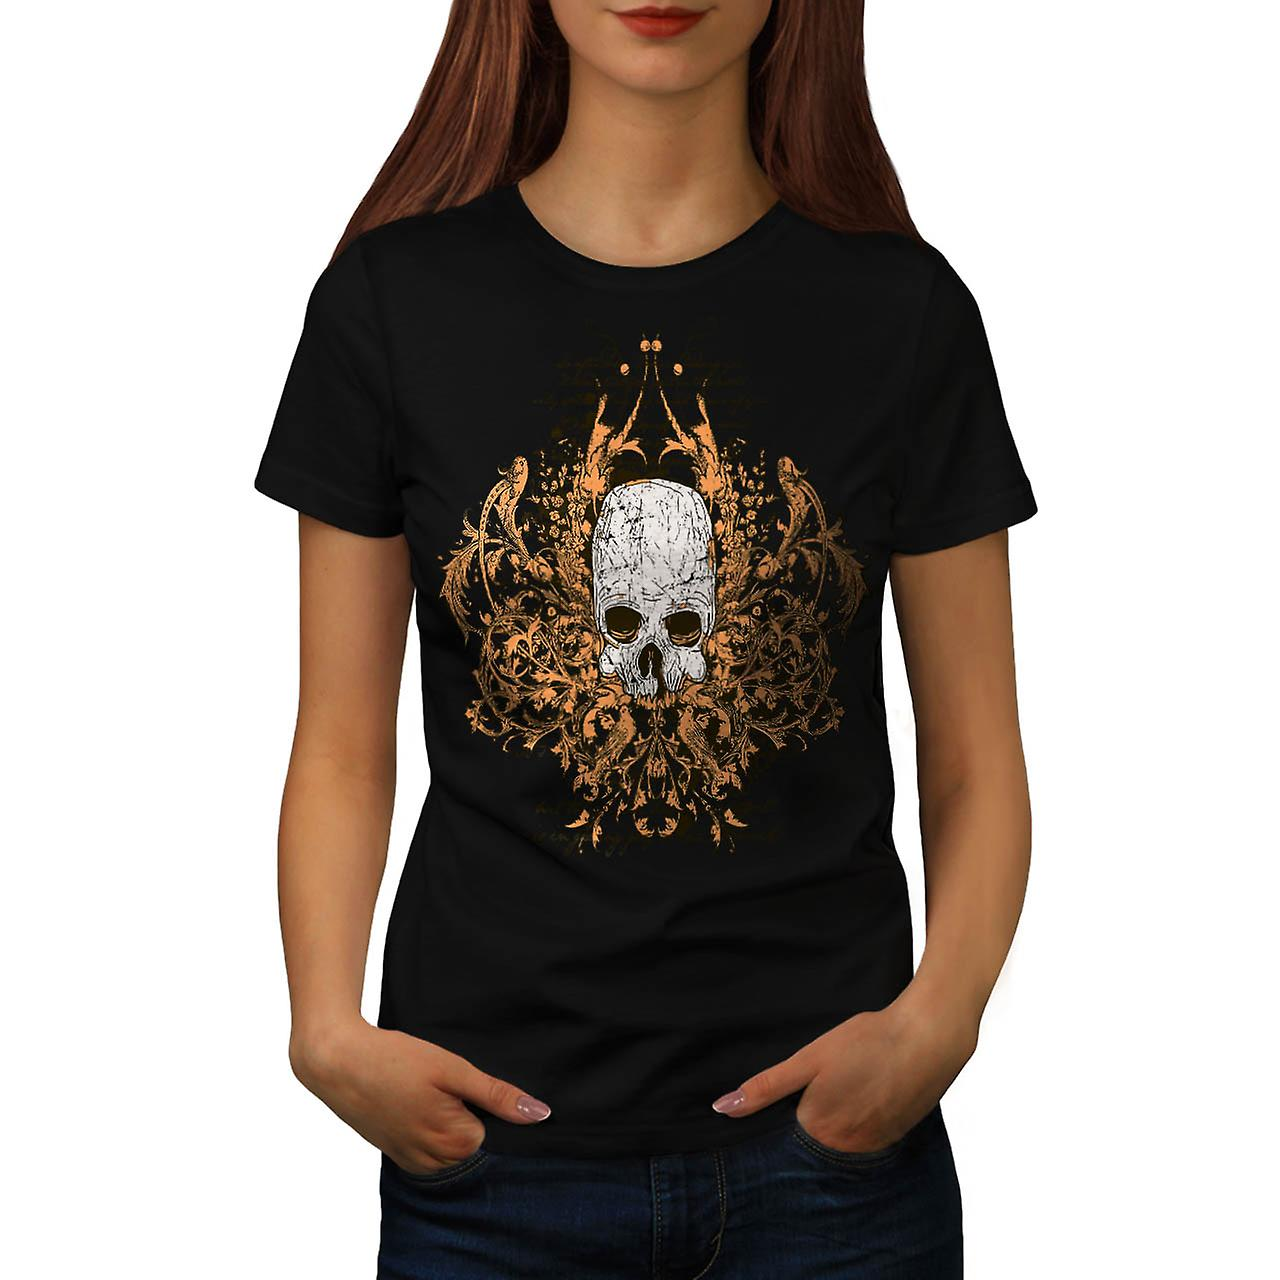 T-shirt nero donne mostro Horror teschio Ghost Story | Wellcoda